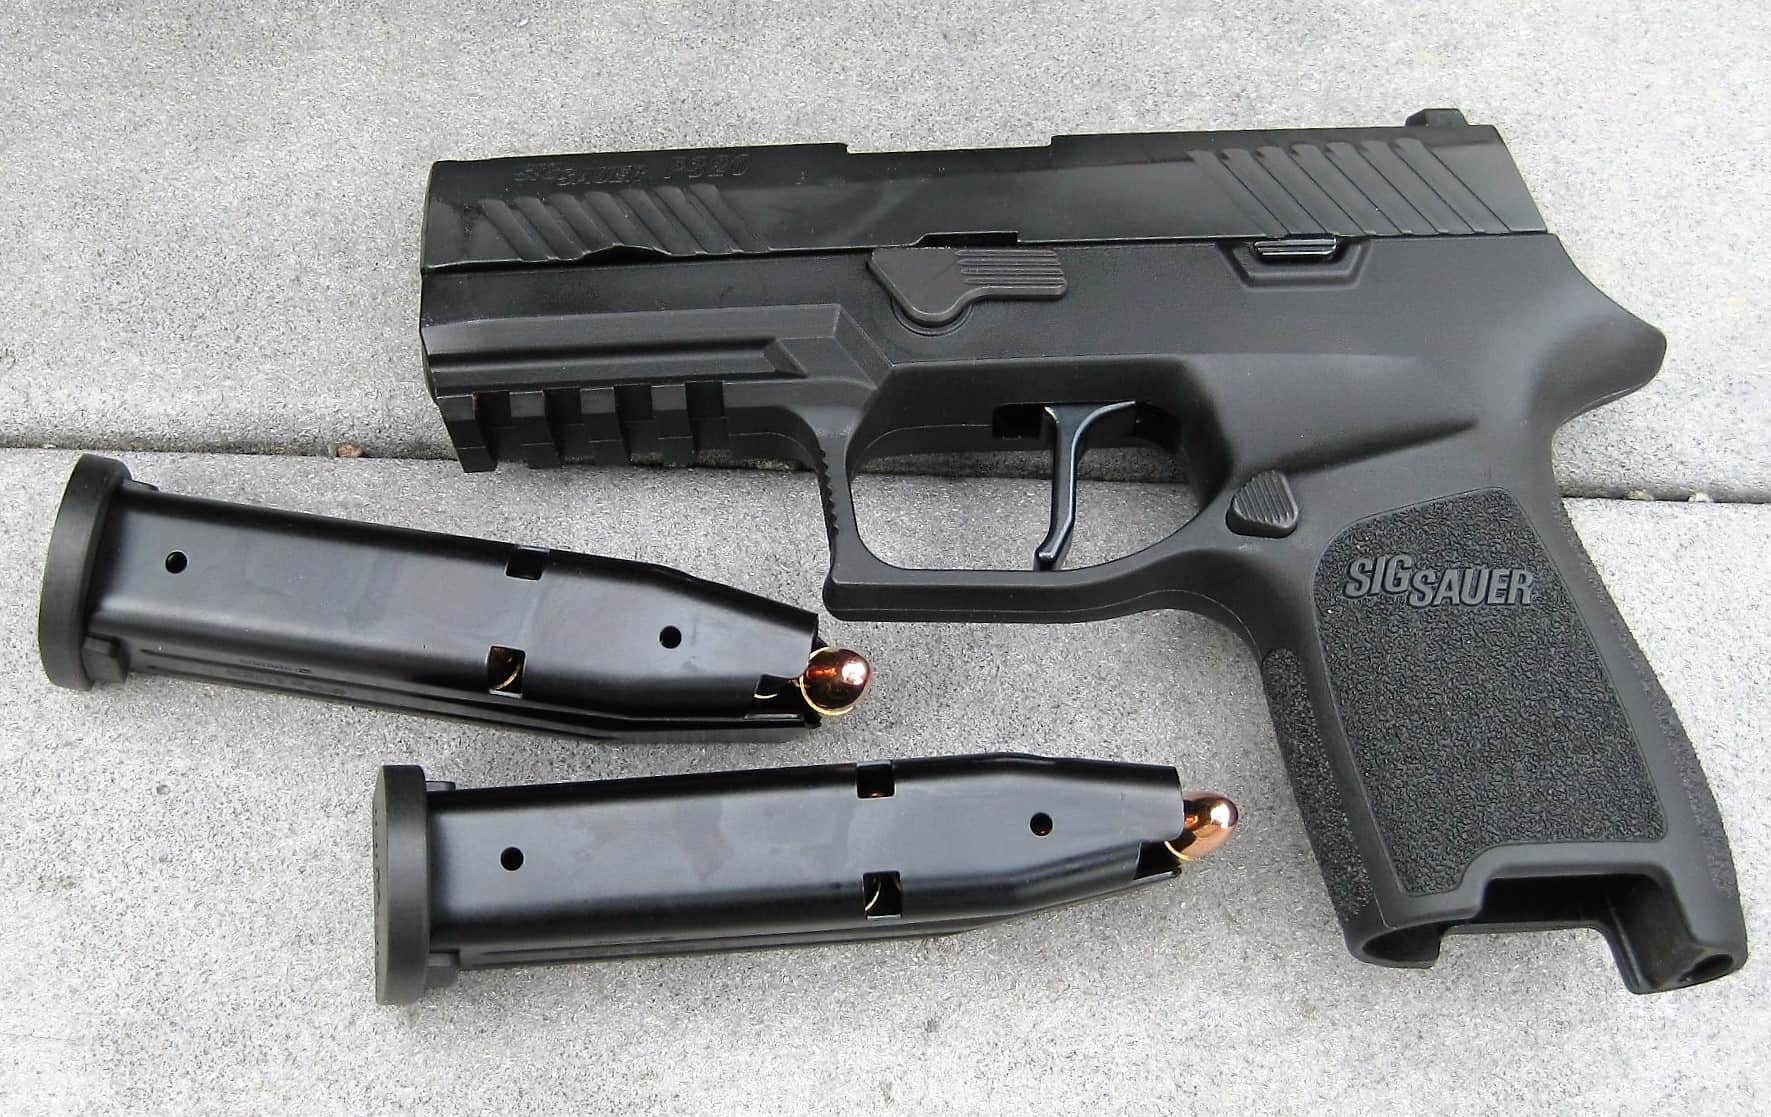 Sig Sauer P320 Drop Fire Issues and Voluntary Upgrade Announcement